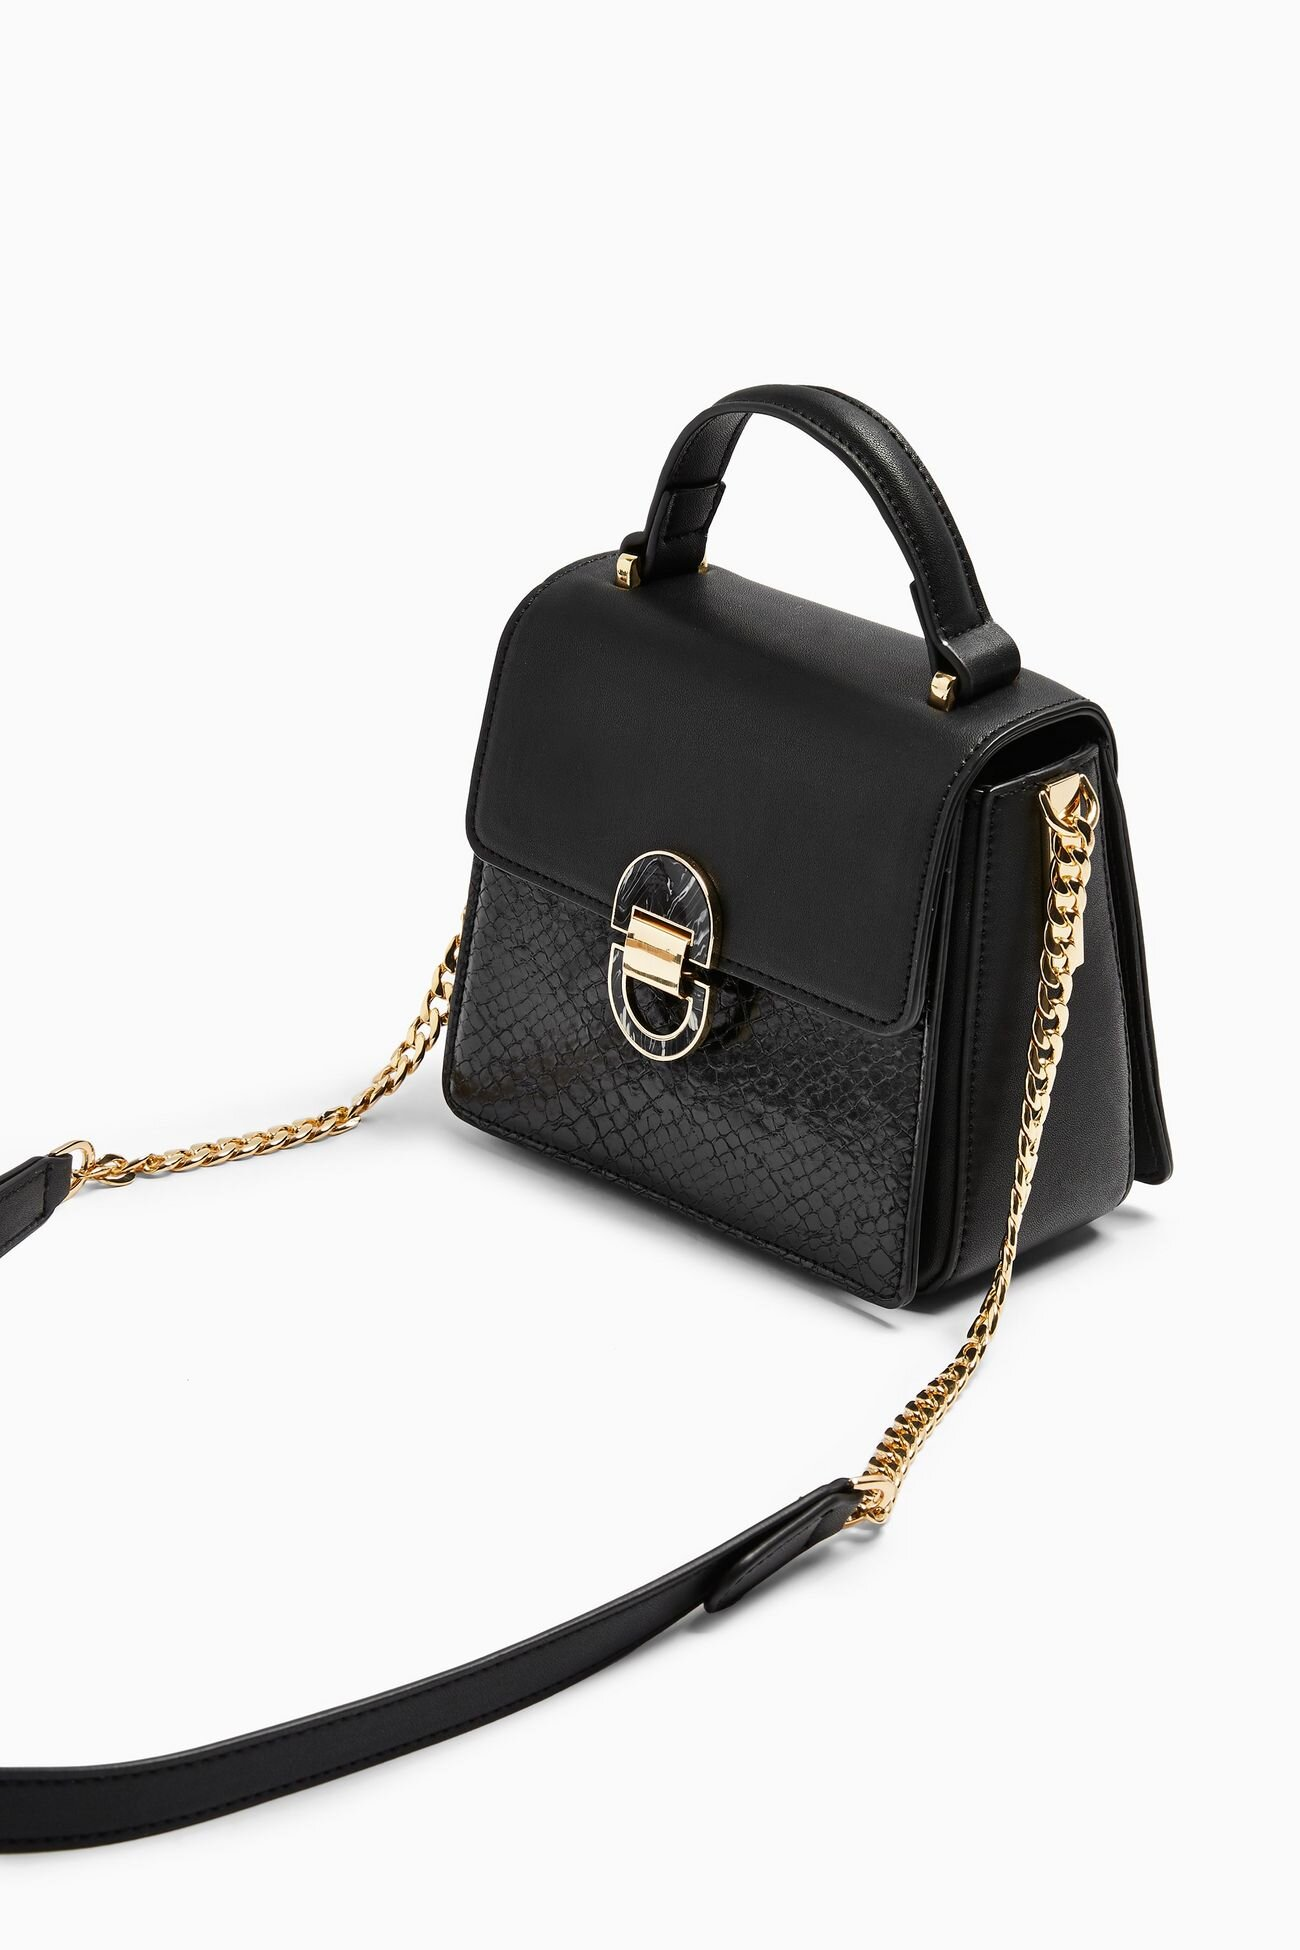 Black Mini Cross Body Bag, $48, Topshop